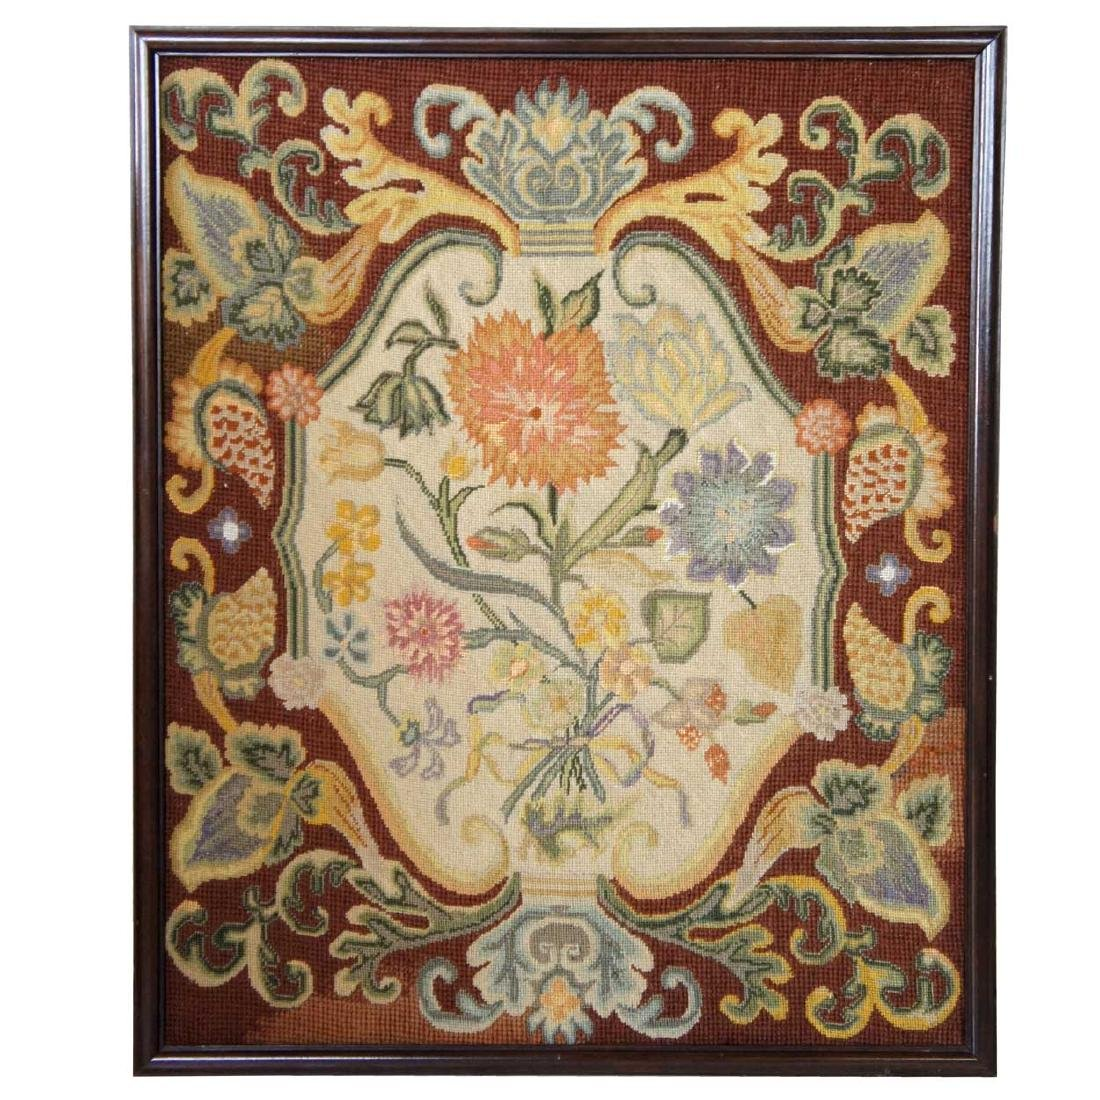 English George III Needlepoint Tapestry Panel